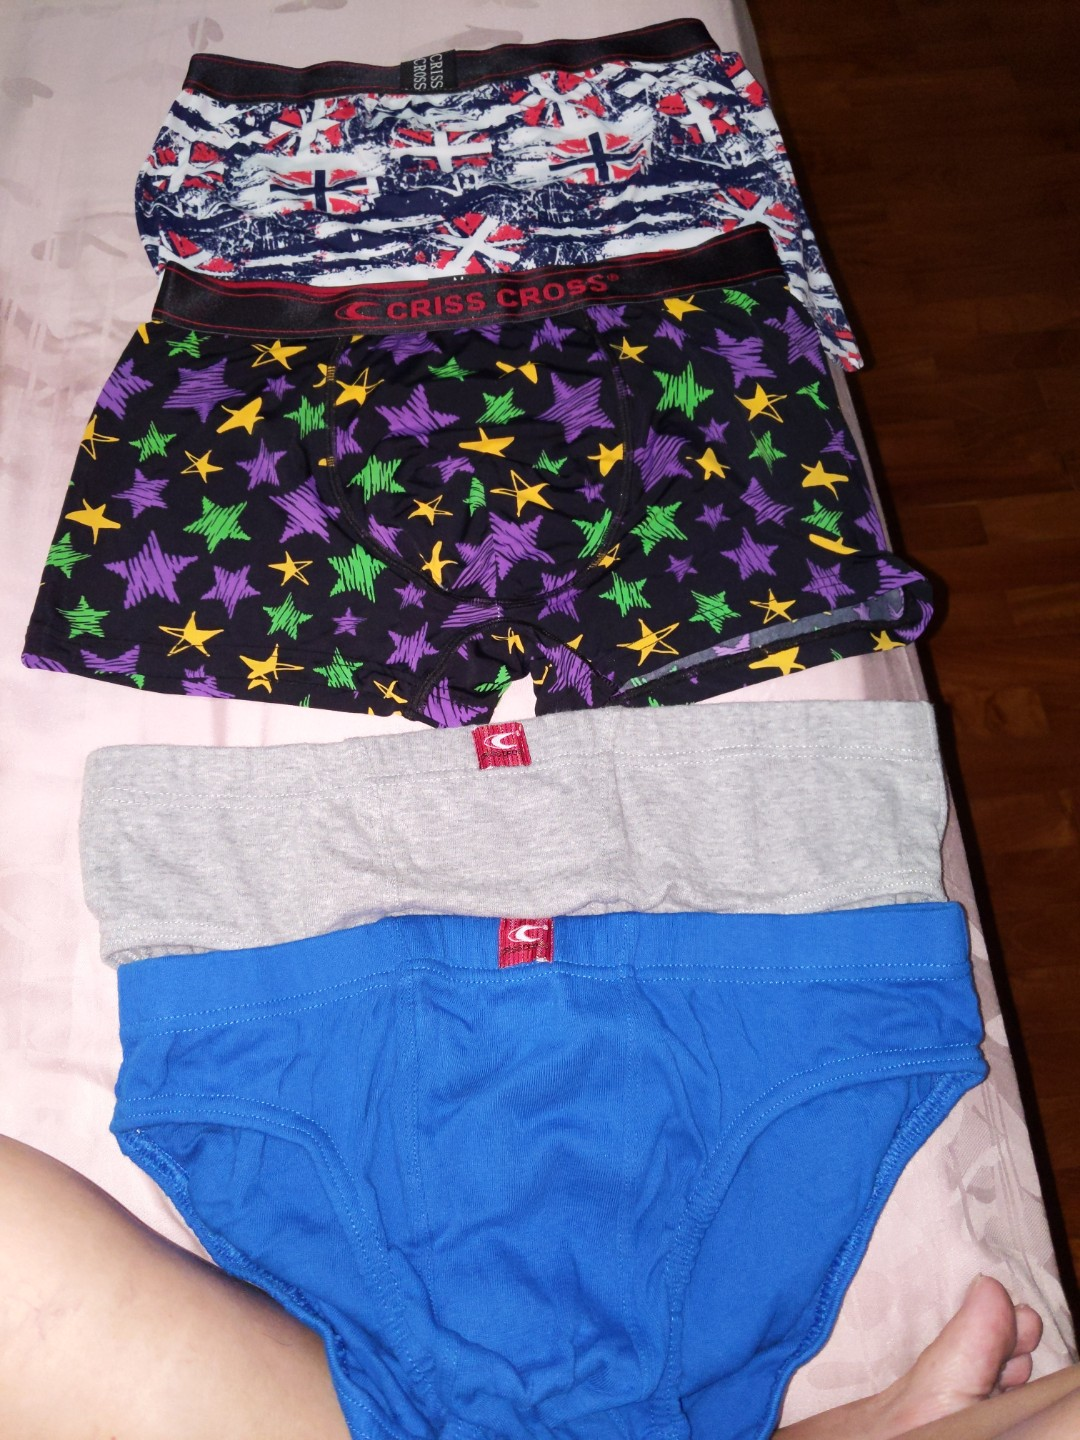 7dba1aa716bf CRISS CROSS boxers and Underwears, Men's Fashion, Clothes, Bottoms ...